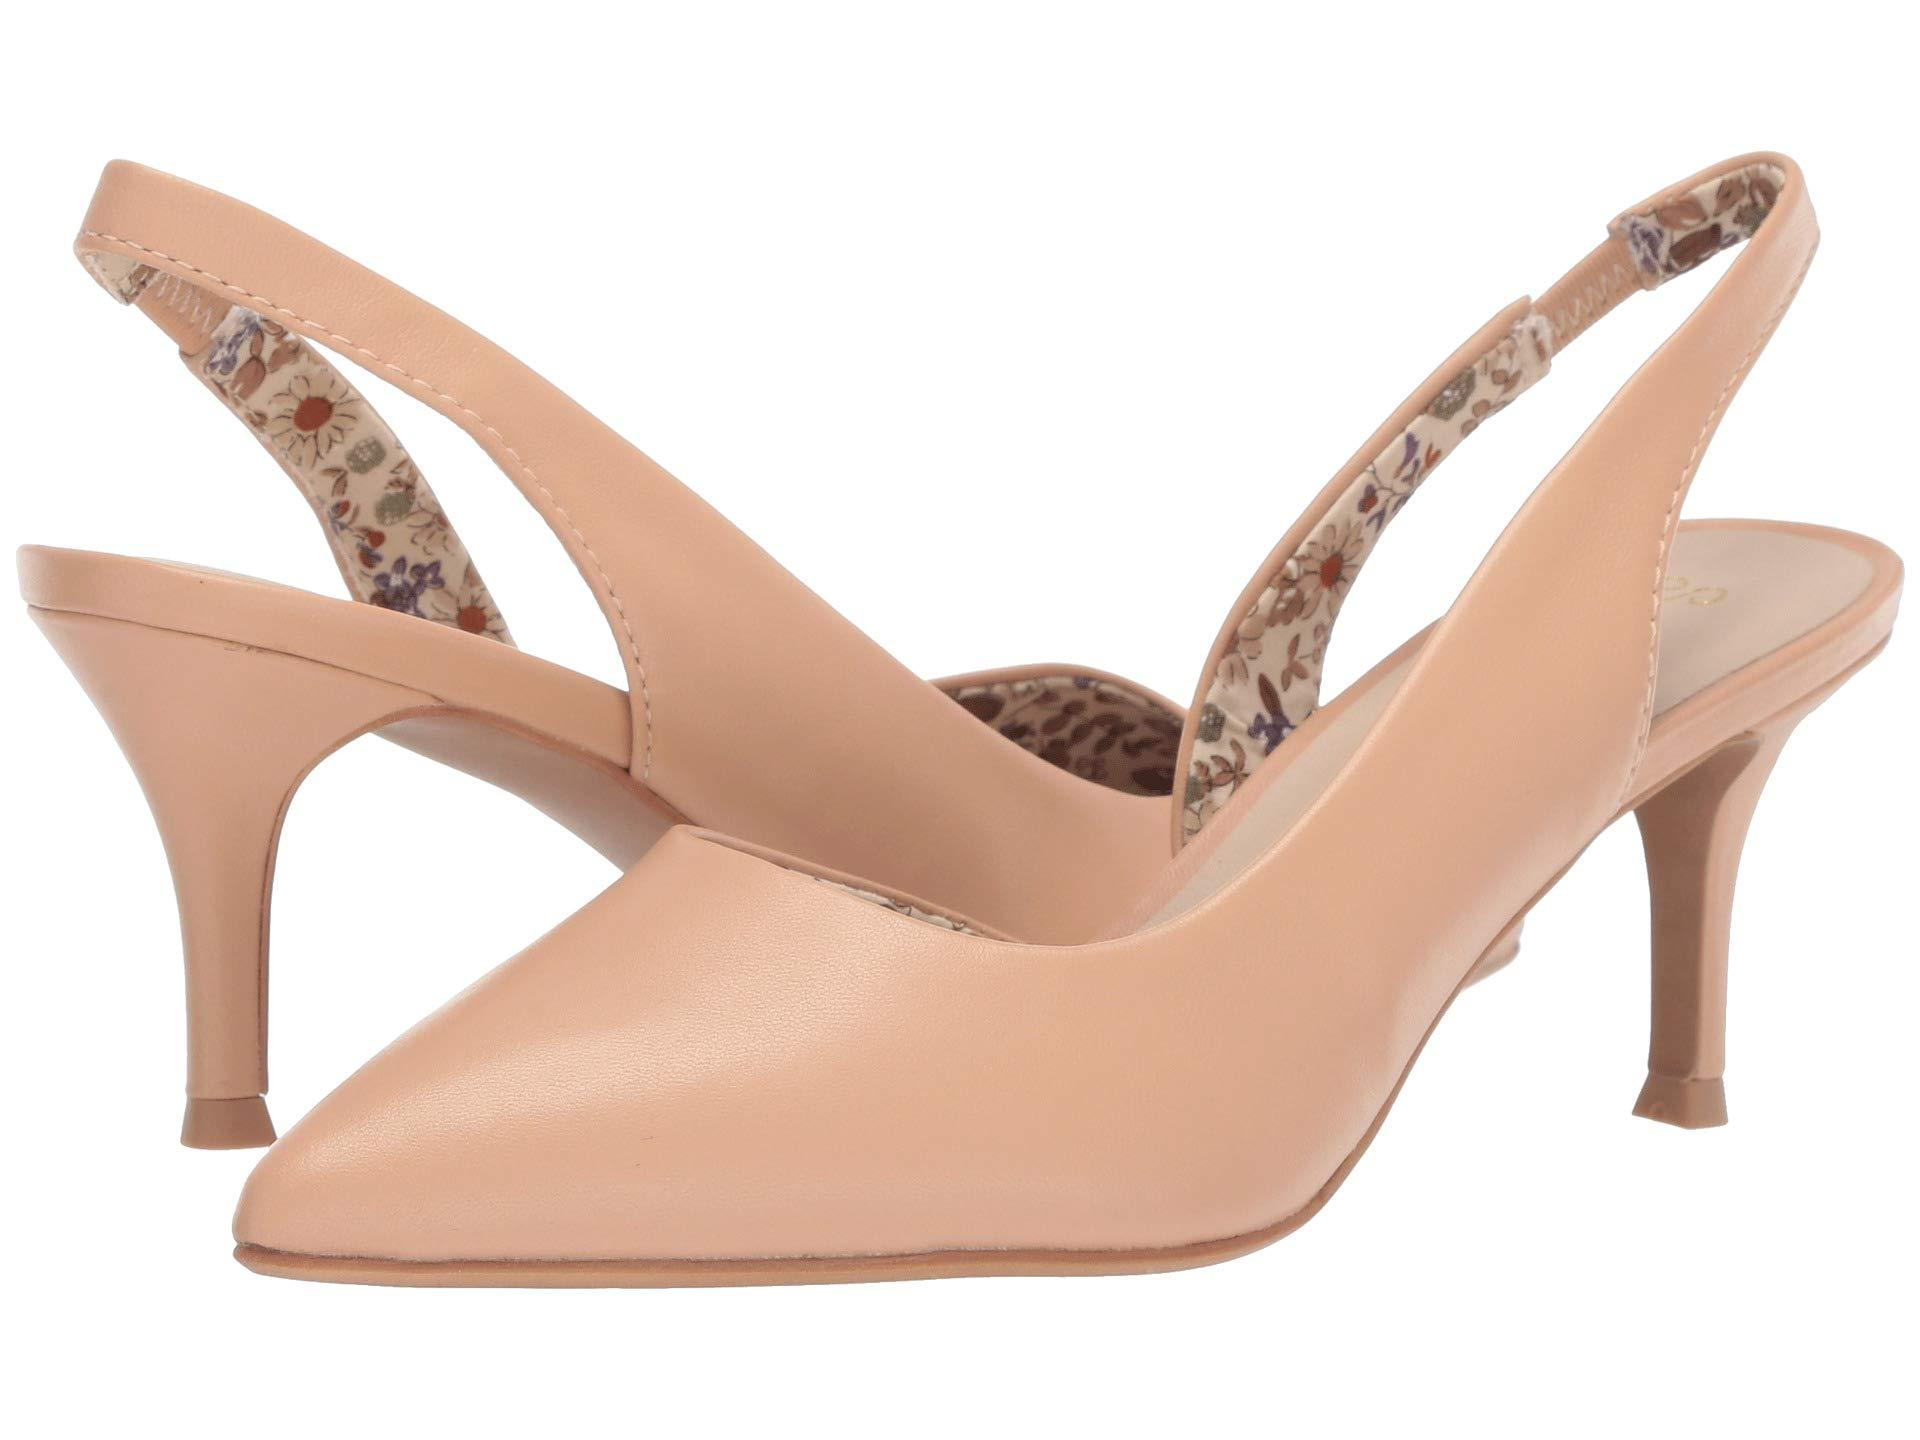 bd862f69d51 Seychelles - Natural Ornament (nude Leather) Women s 1-2 Inch Heel Shoes -.  View fullscreen